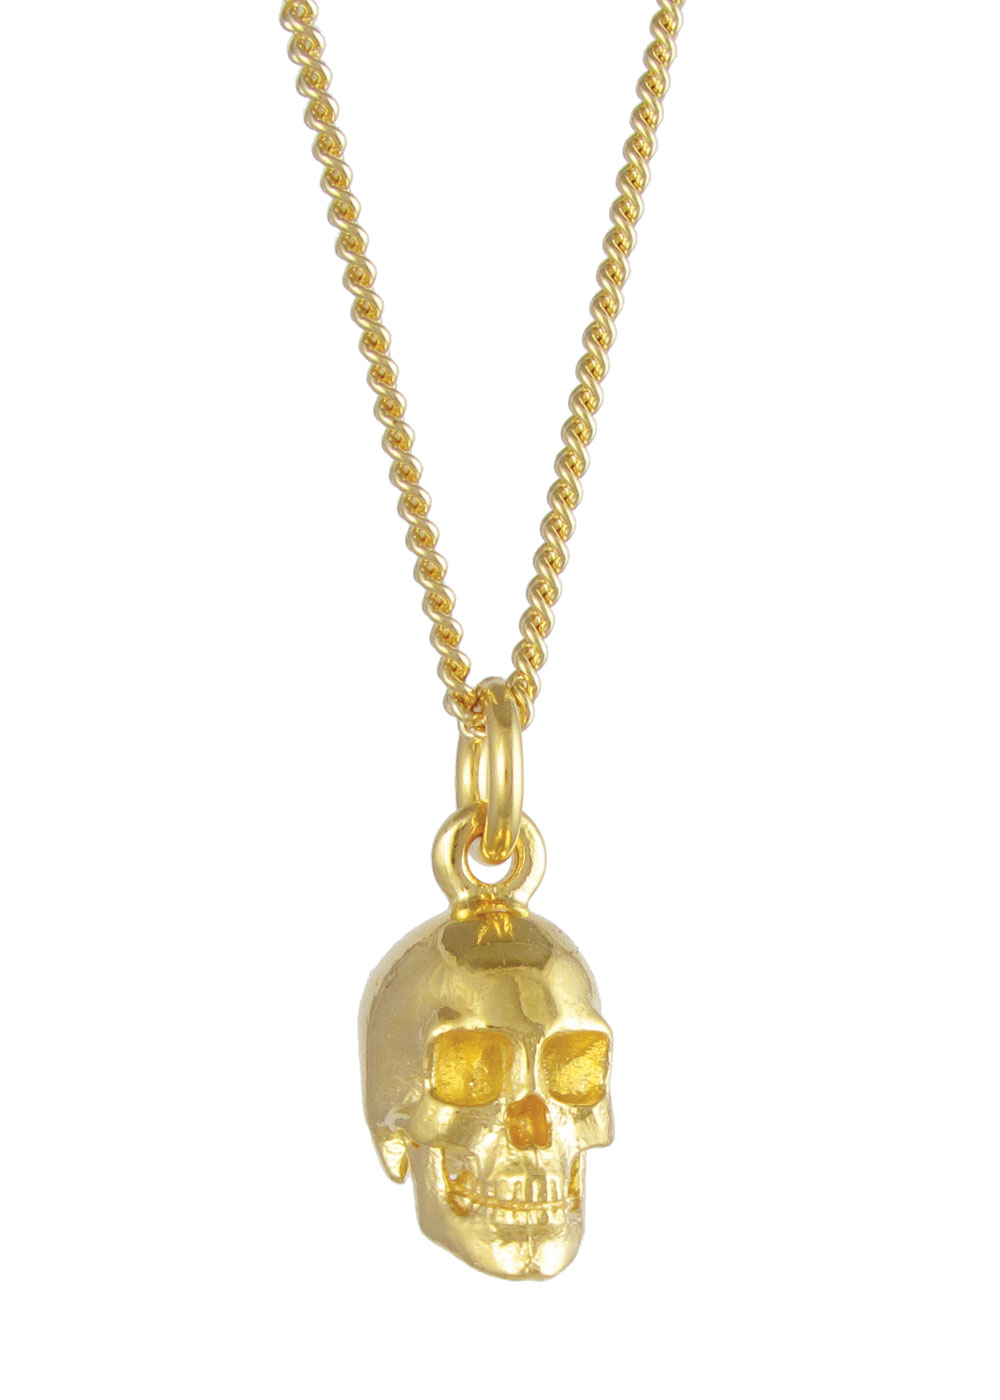 macabre mercantile skull decadent wickedly items products necklace bird product